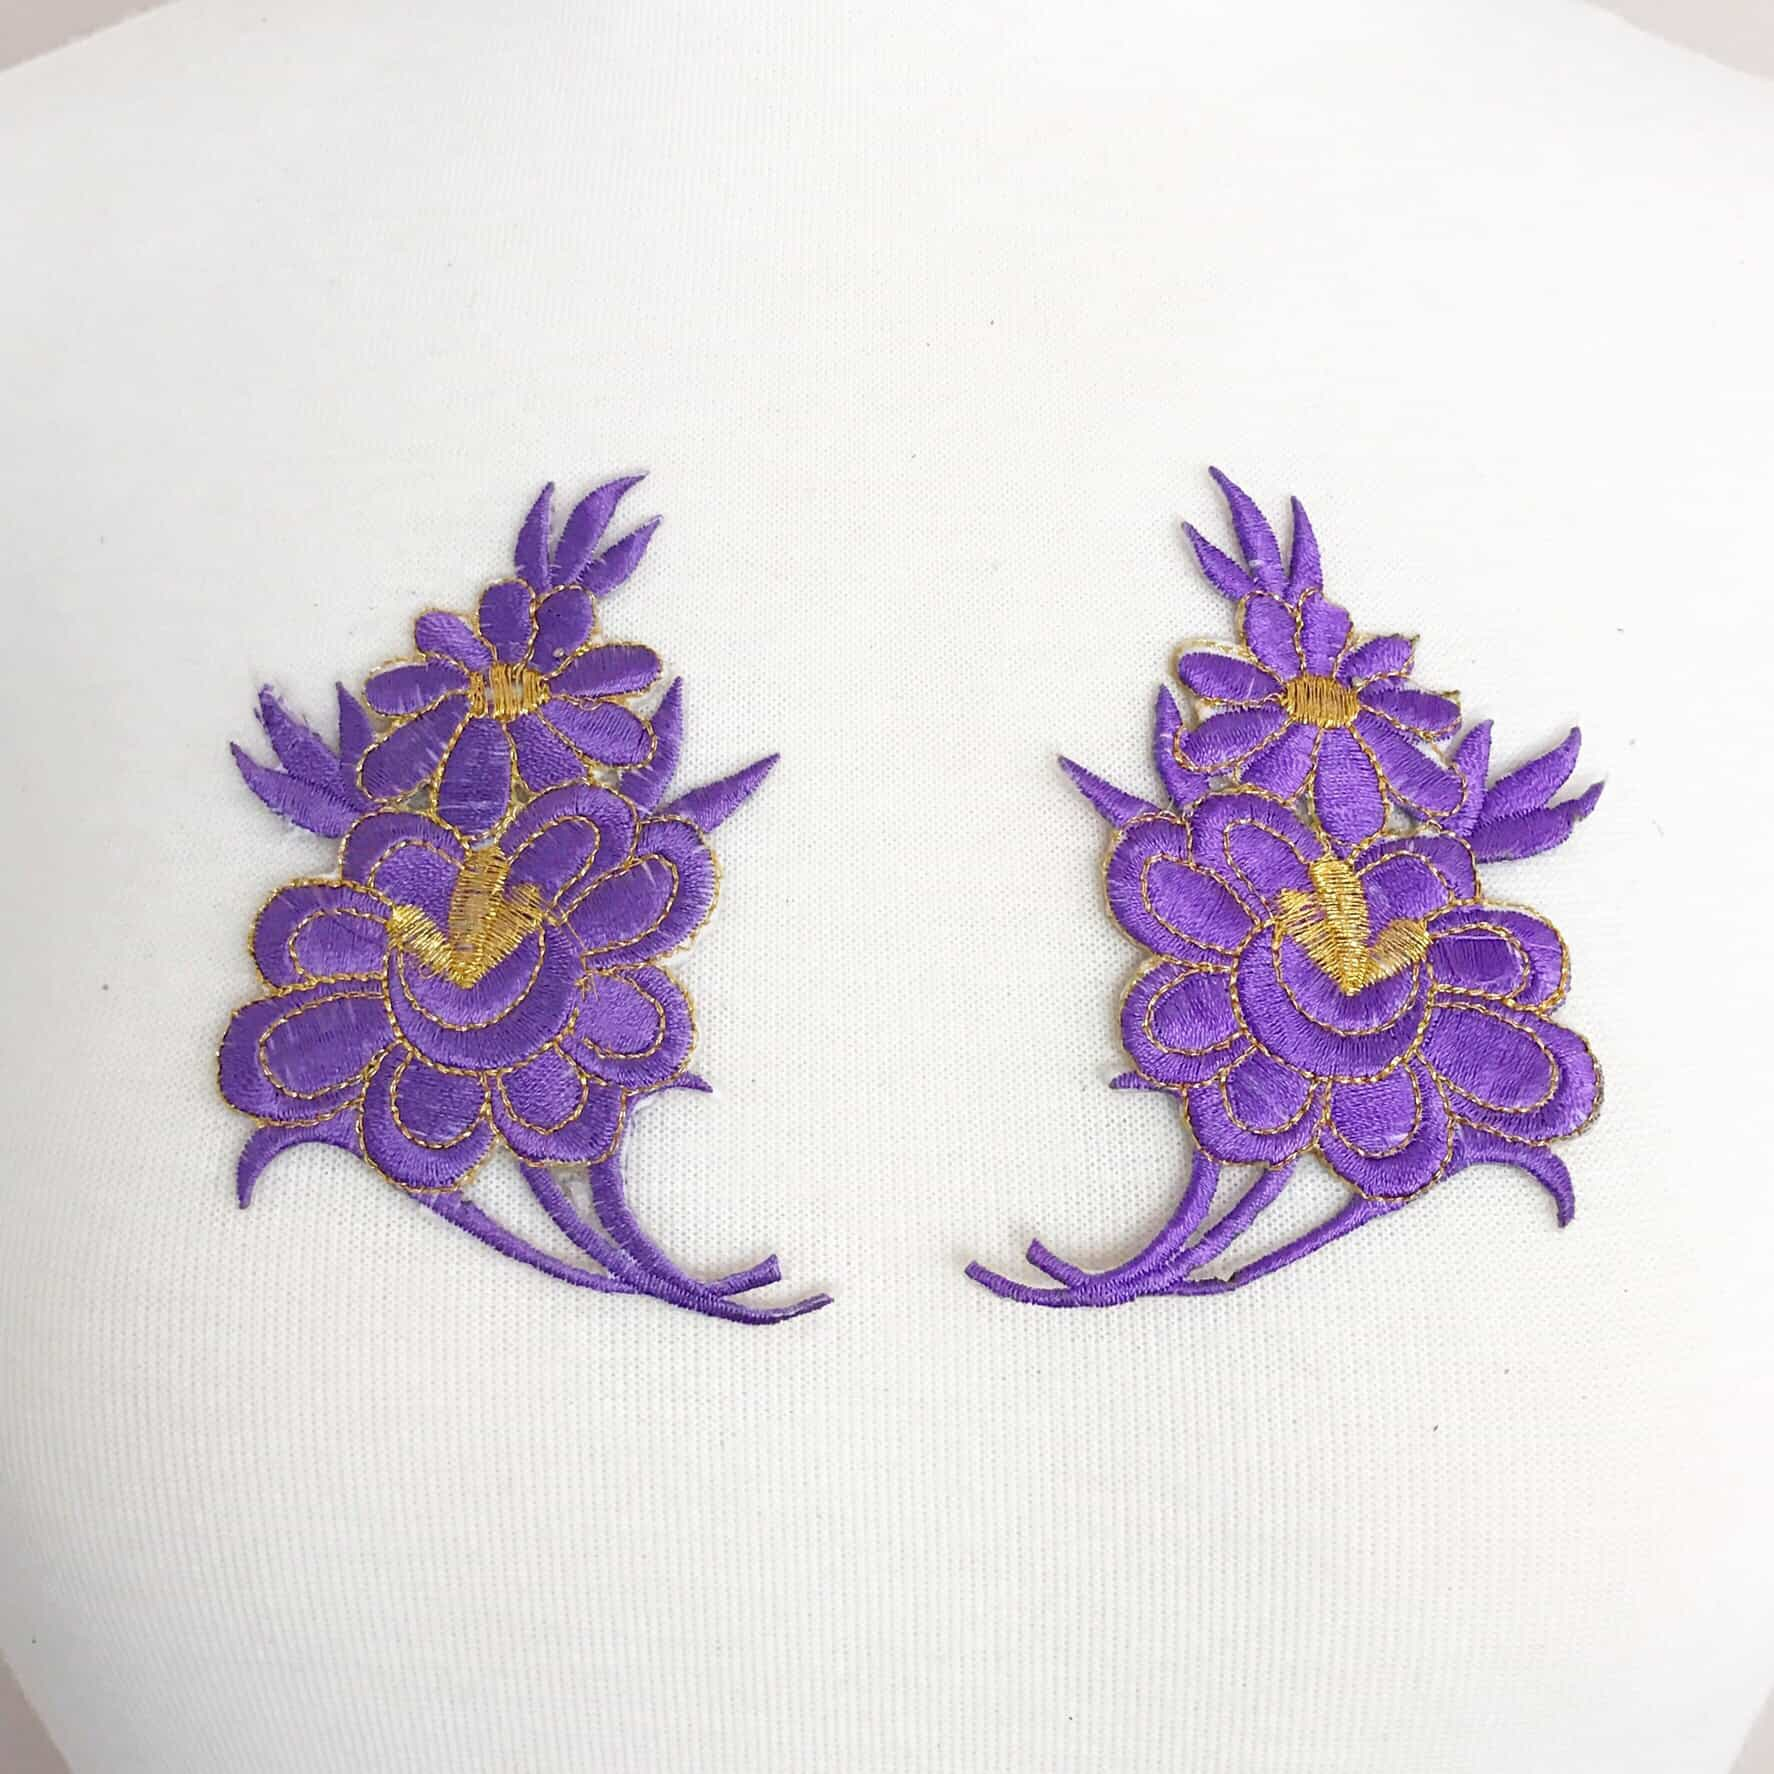 Matching Floral Embroidered Patches (SOLD AS PAIR)